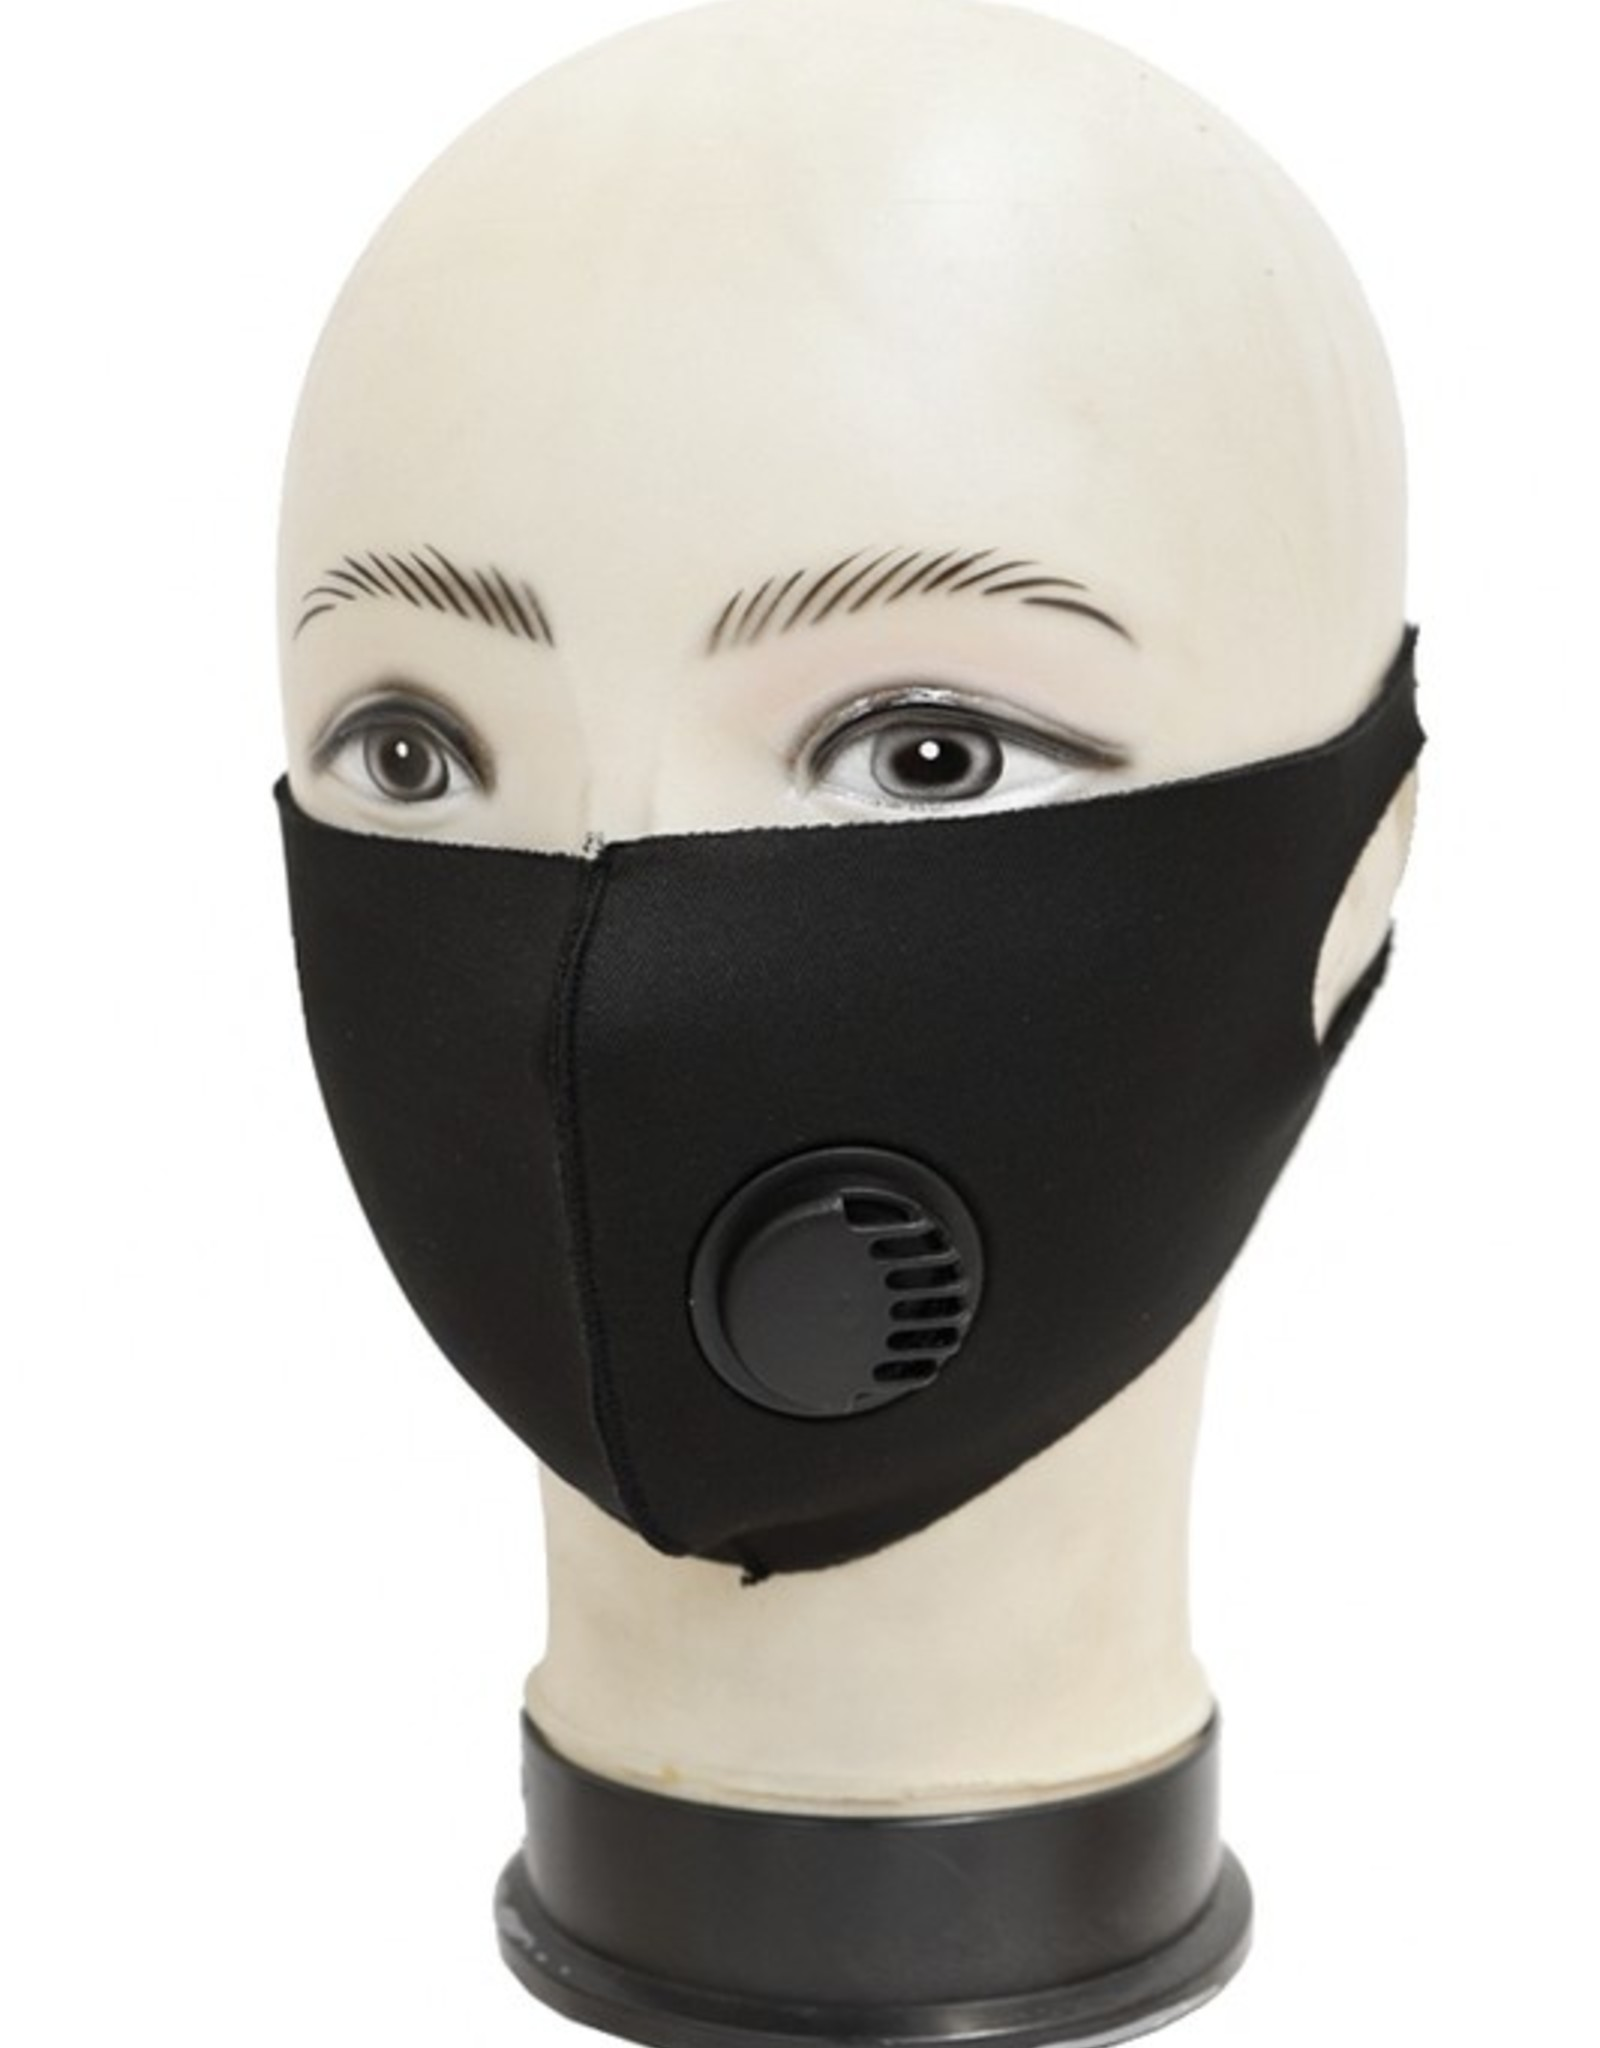 Solid mask